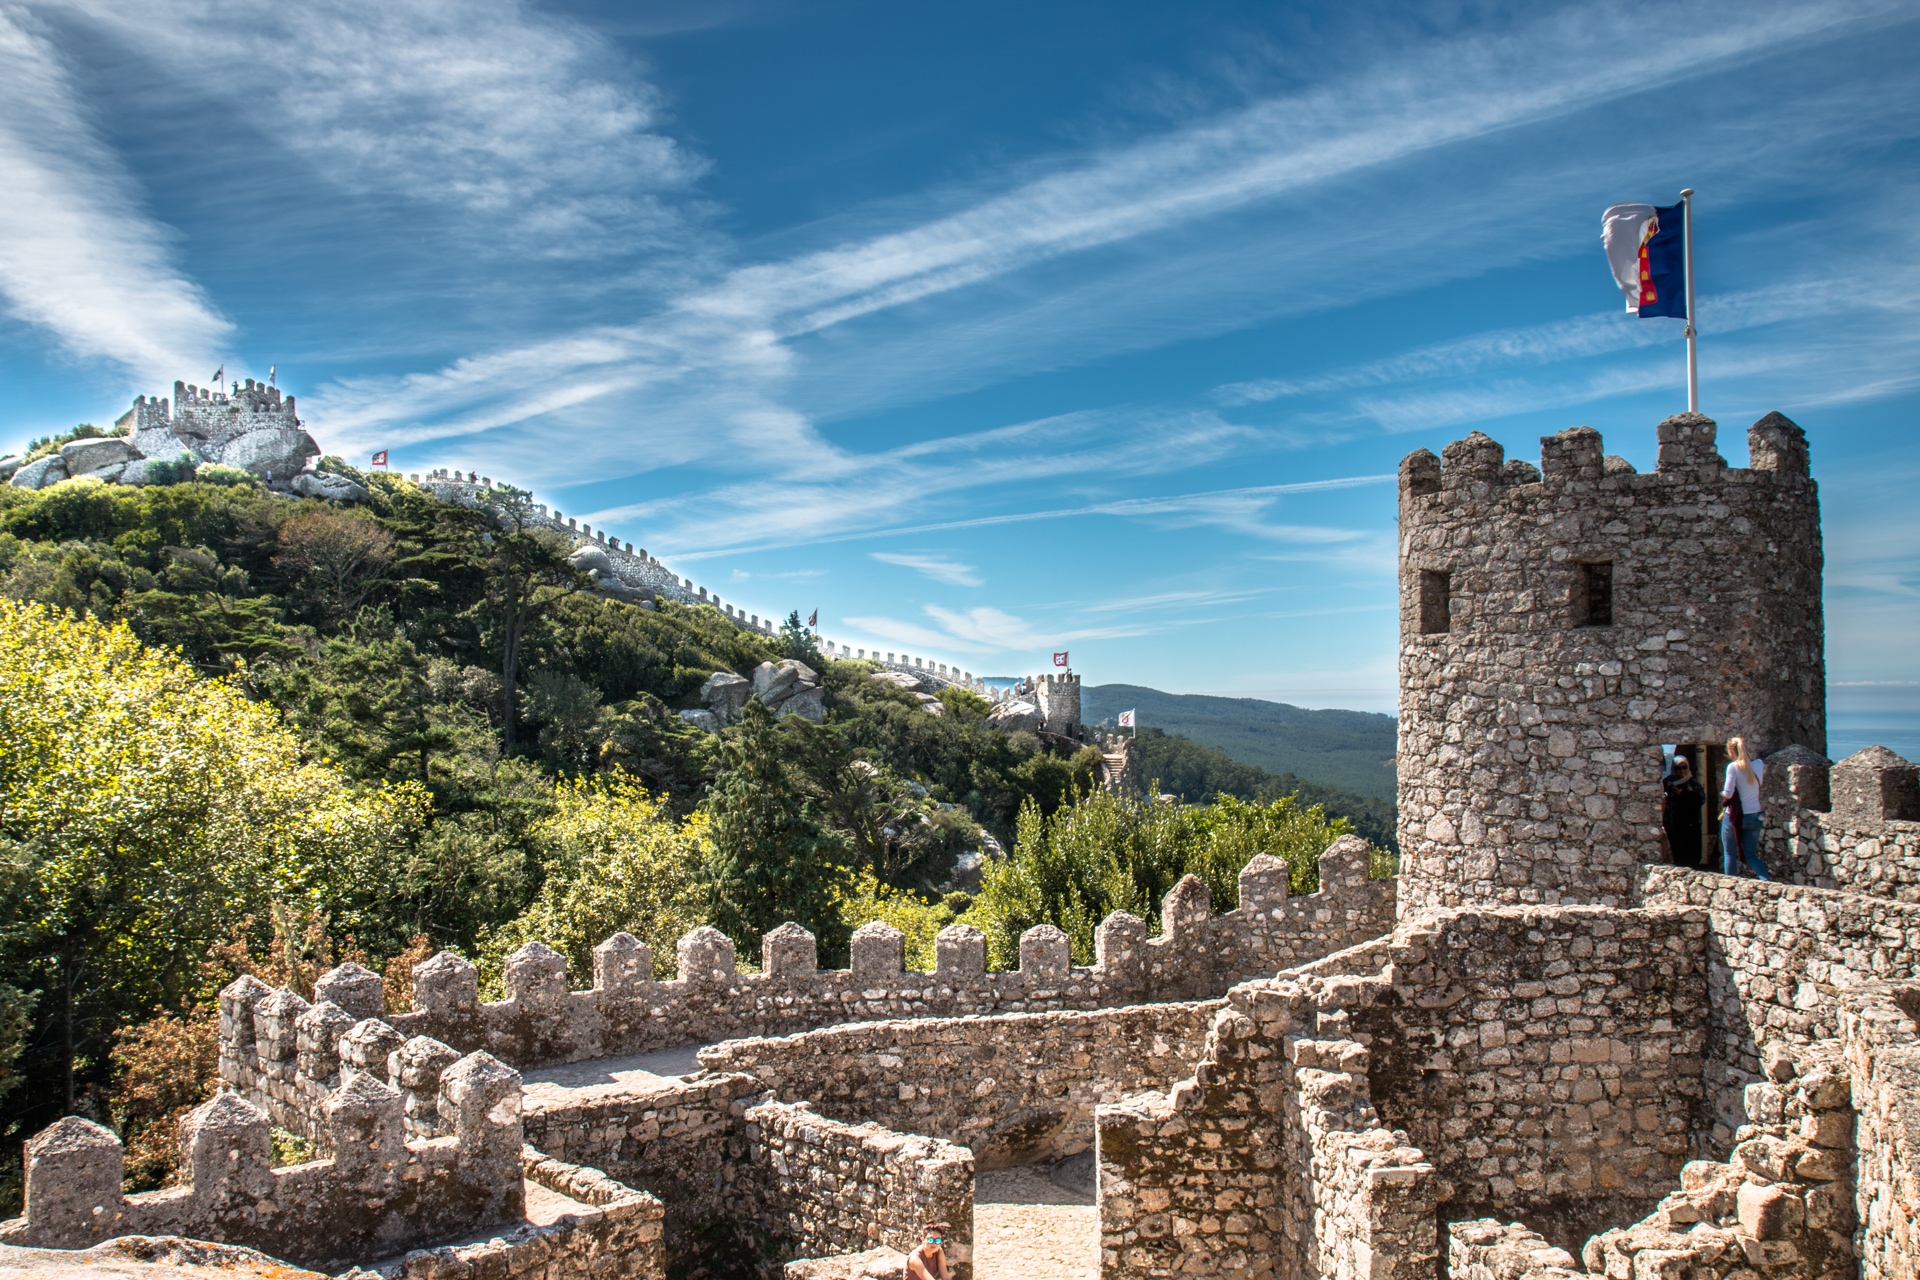 Sightseeing trip to Sintra during your stay at SaltyWay Surfcamp in Portugal